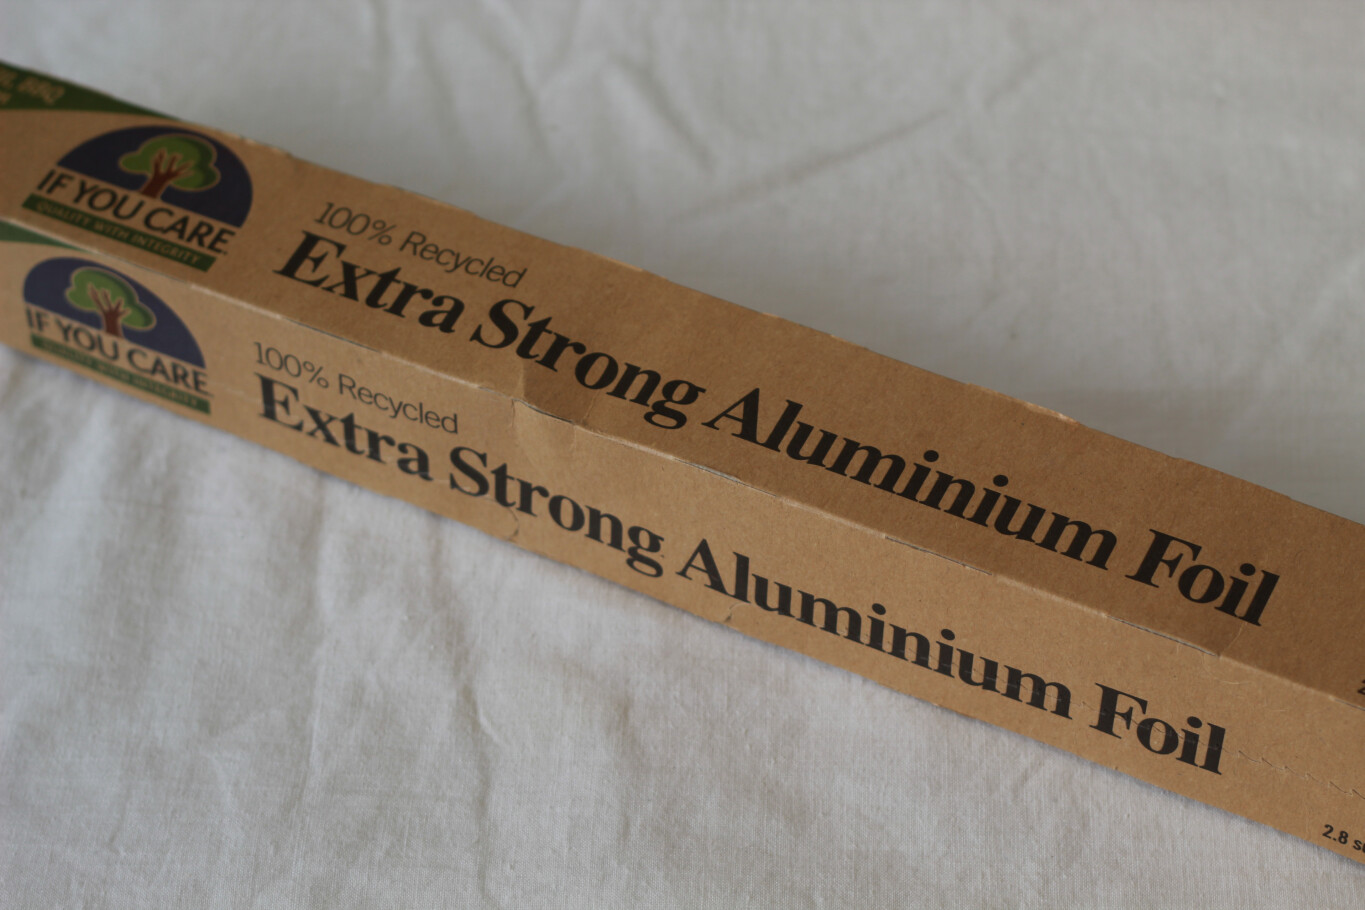 If You Care Extra Strong Aluminium Foil